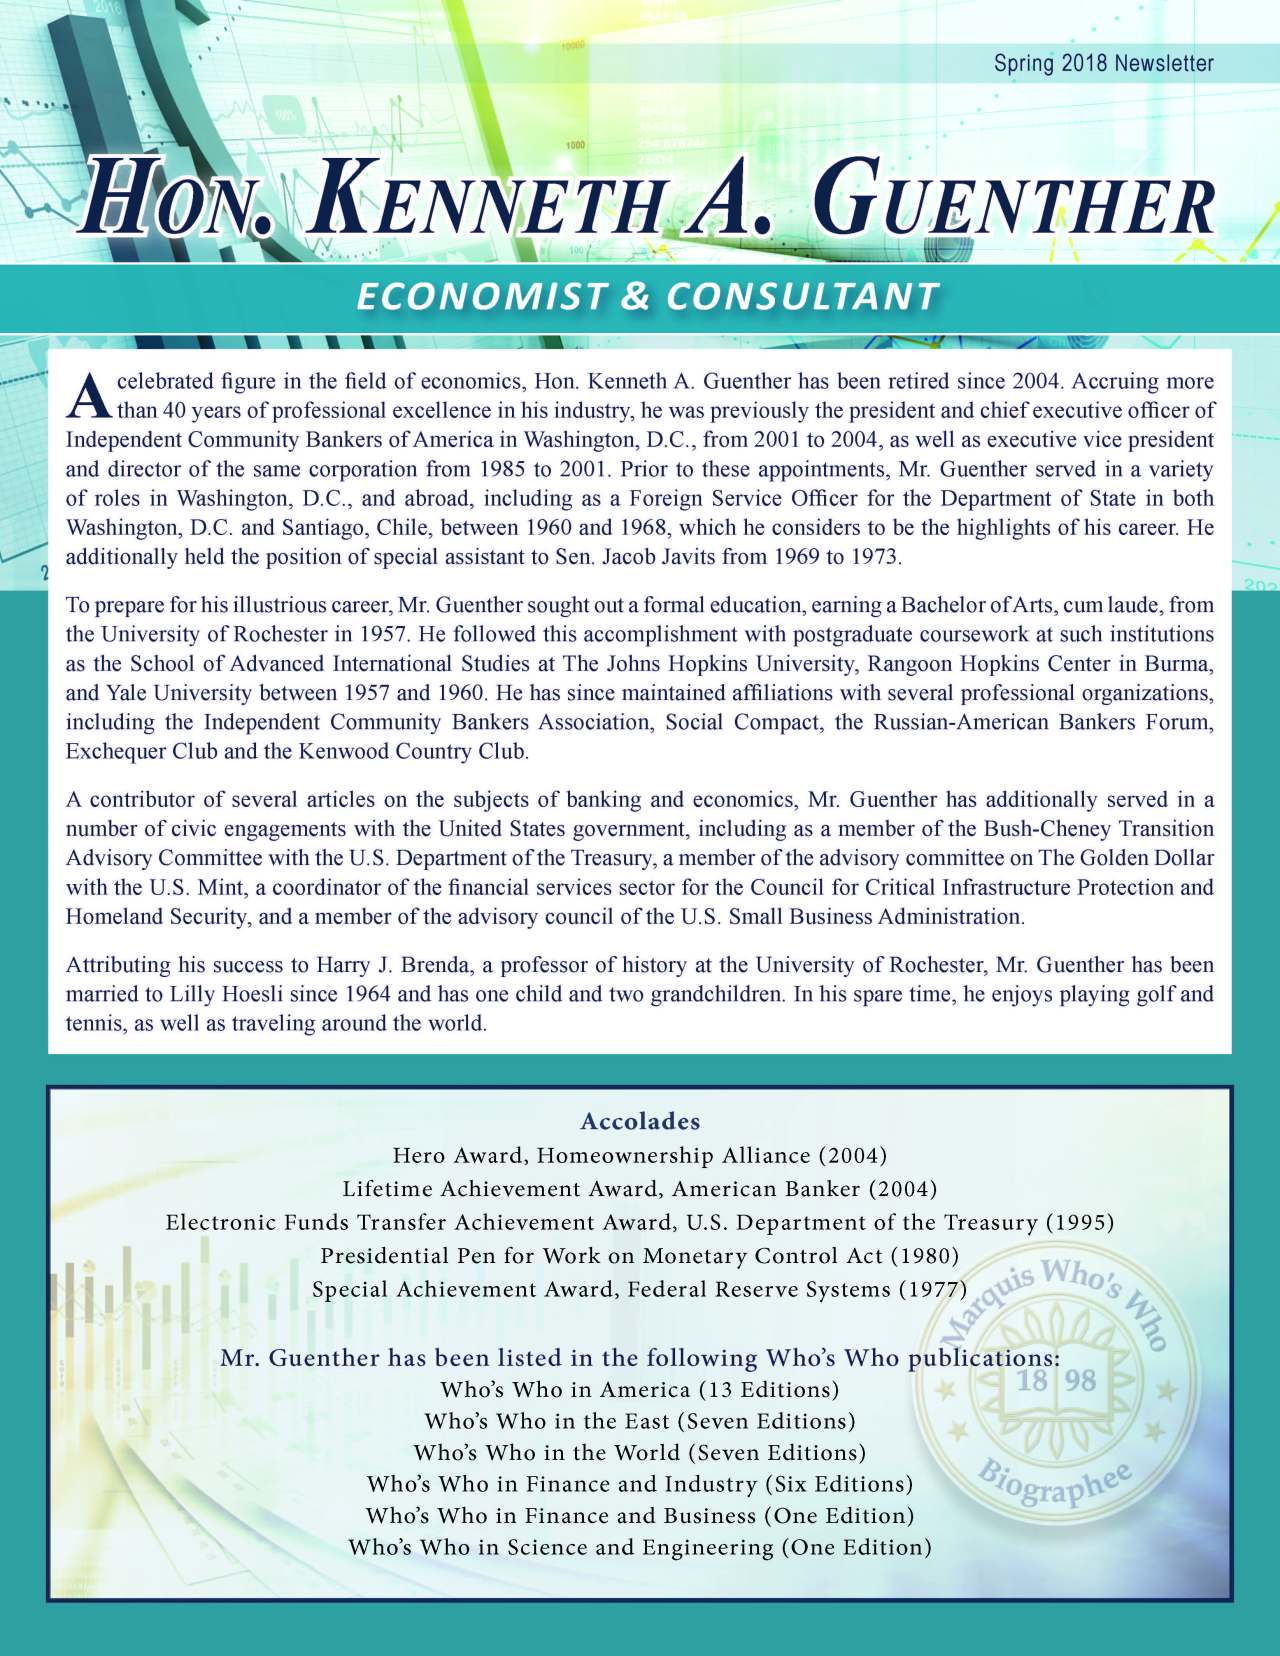 Guenther, Kenneth 3713109_2717210 Newsletter.jpg